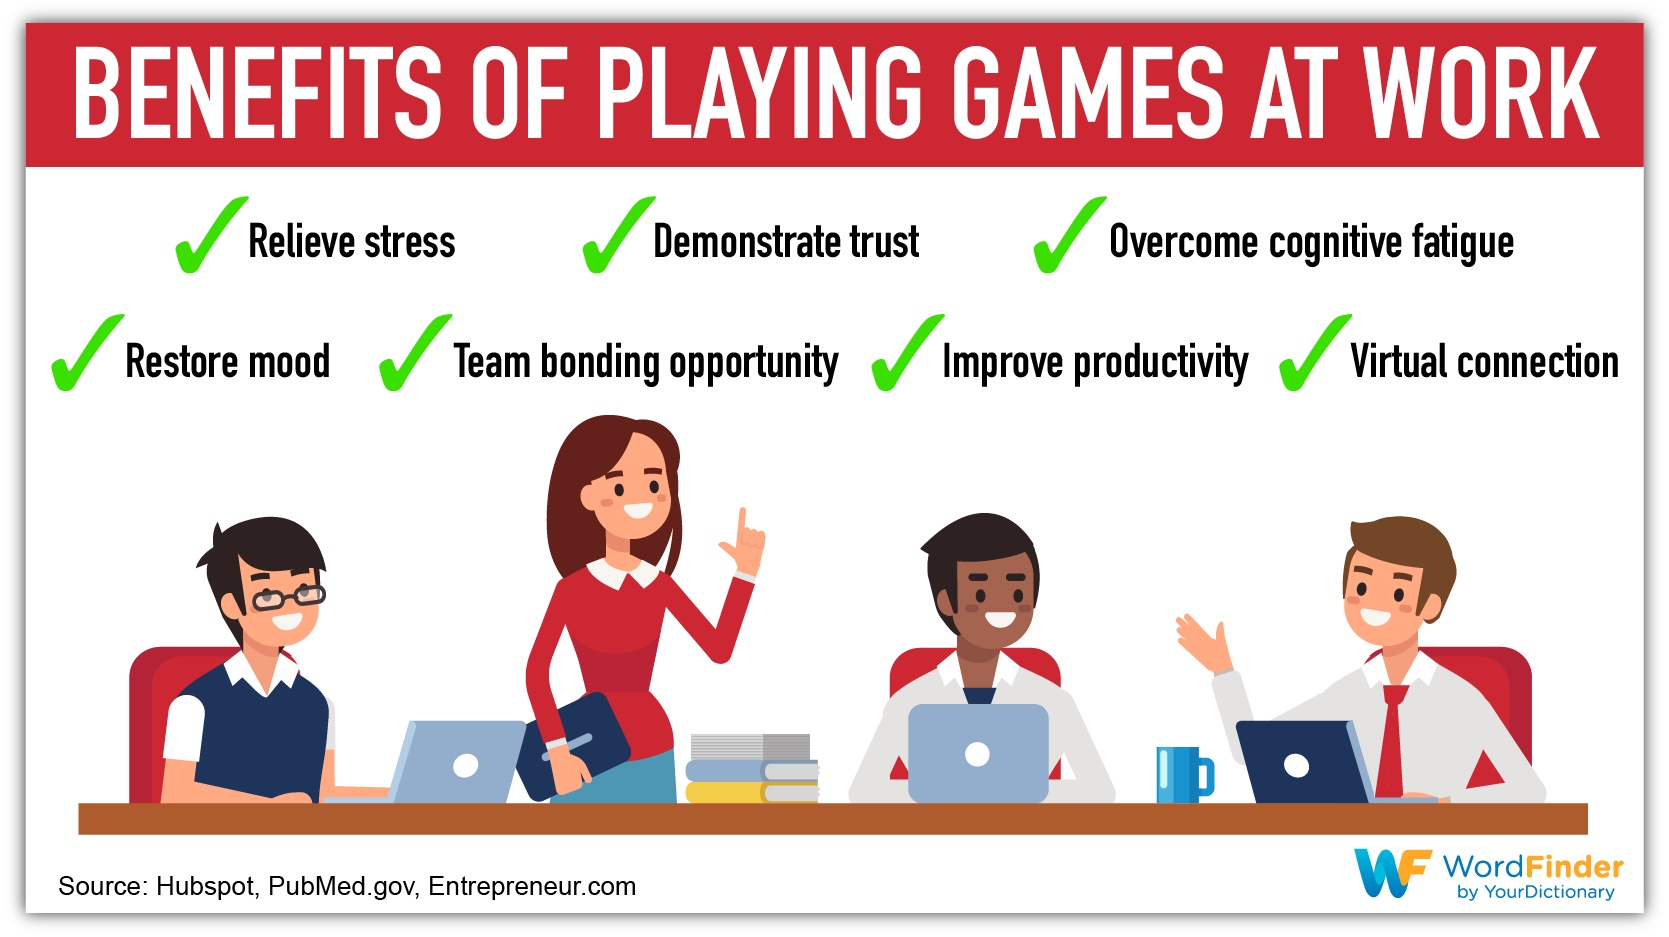 benefits of playing games at work infographic